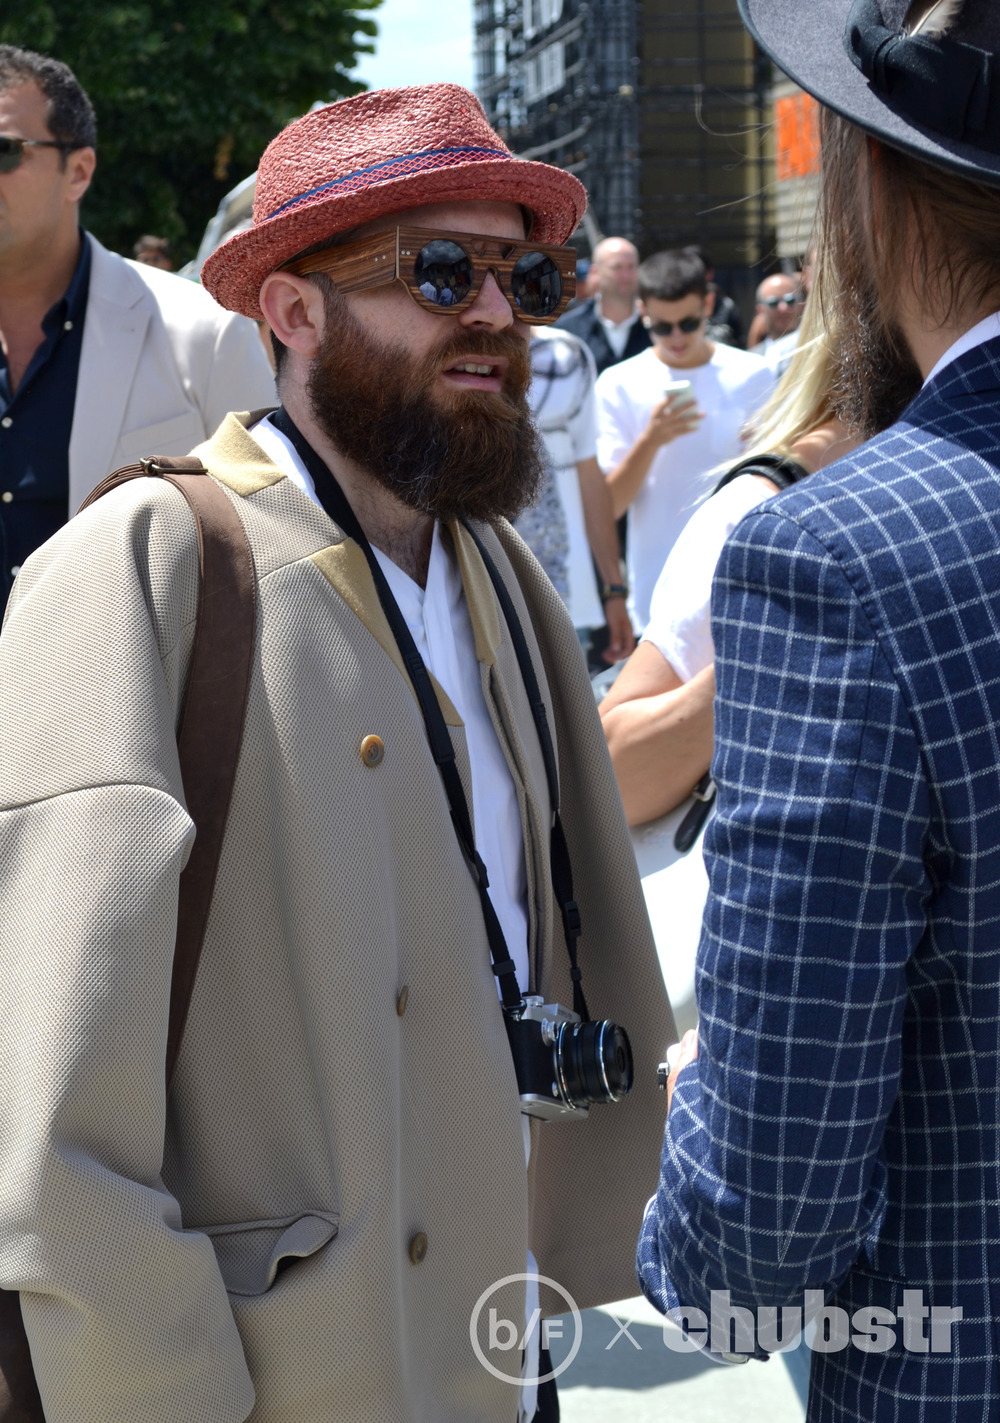 BF032_PittiUomo88_FB_2.jpg